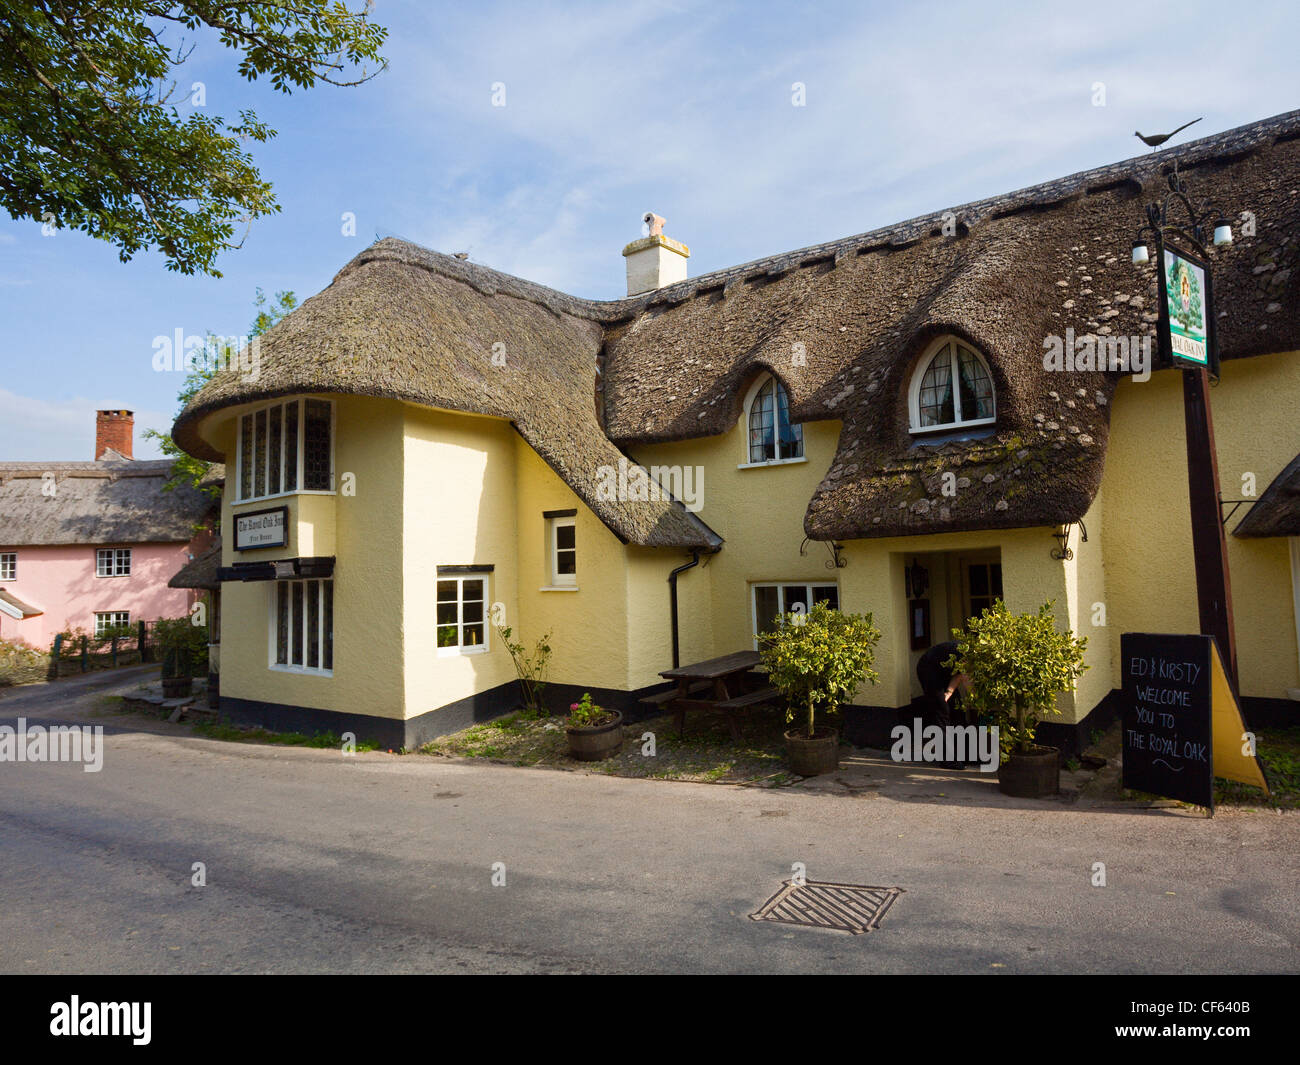 The Royal Oak Inn at Winsford in the heart of the Exmoor National Park. - Stock Image